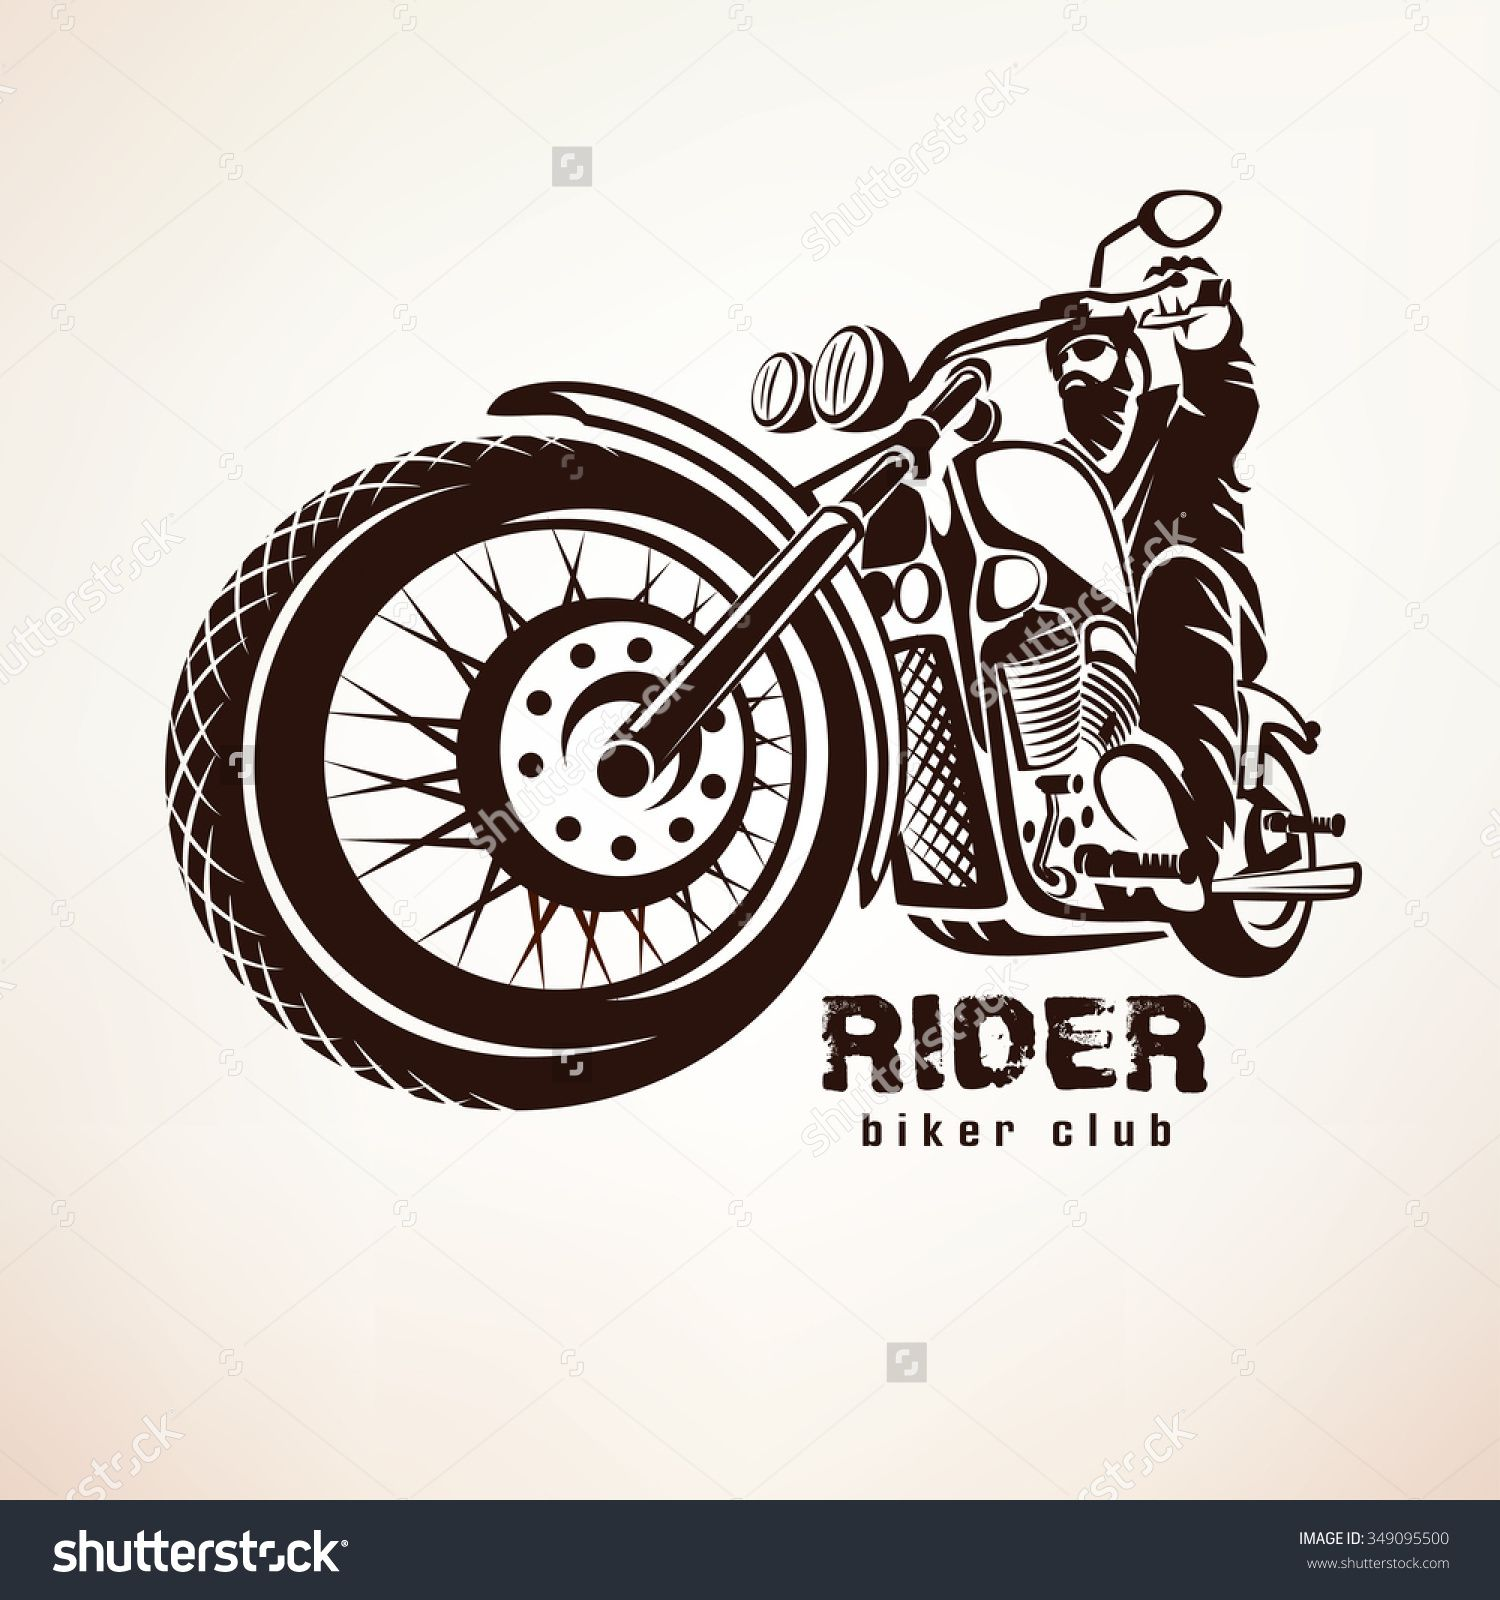 Biker, Motorcycle Grunge Vector Silhouette, Retro Emblem And.